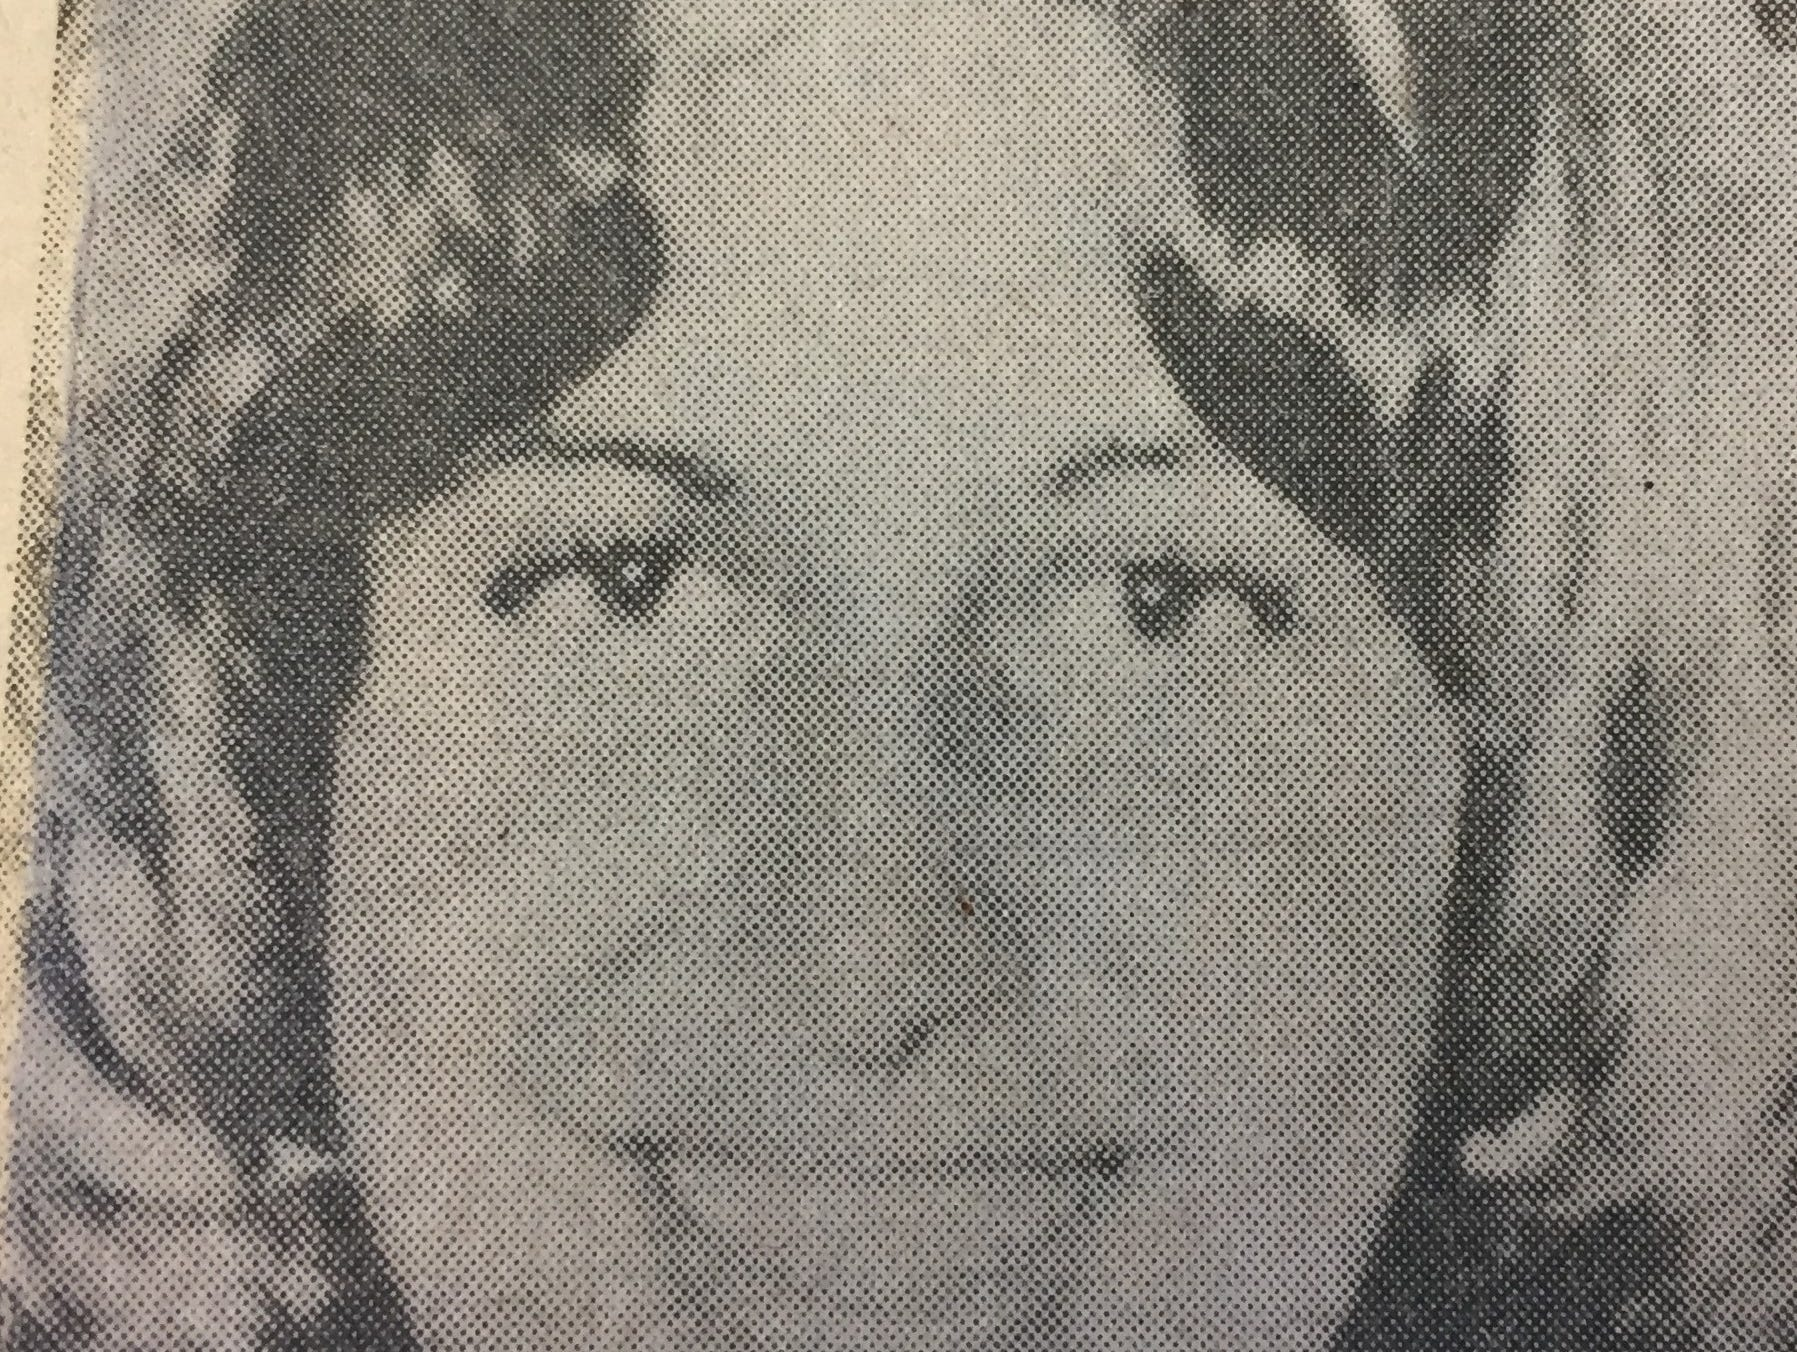 Lisa Levy is one of the two Florida State University students murdered in the Chi Omega attacks on Jan. 15, 1978.